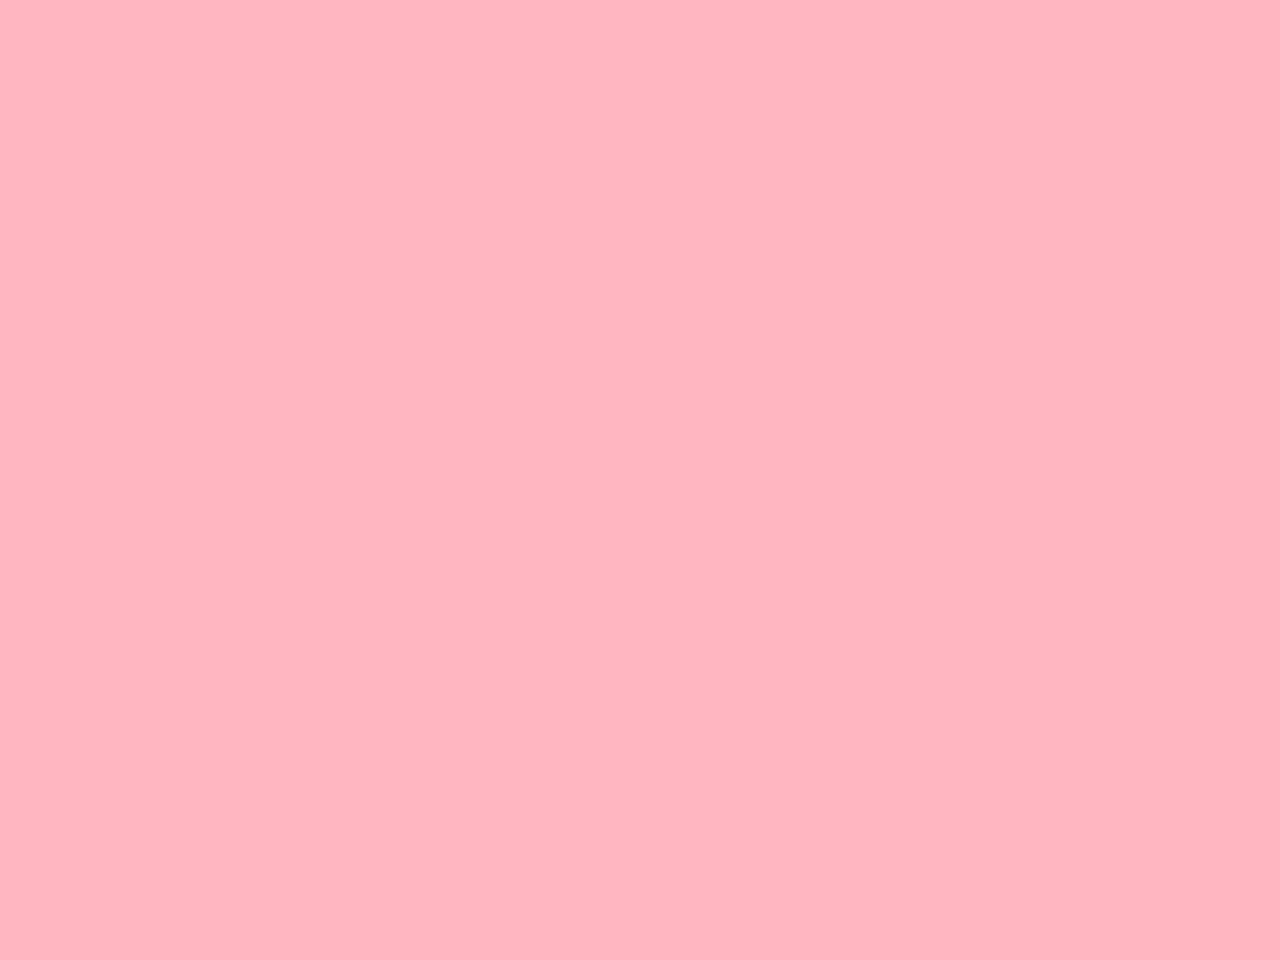 1280x960 resolution Light Pink solid color background view and 1280x960